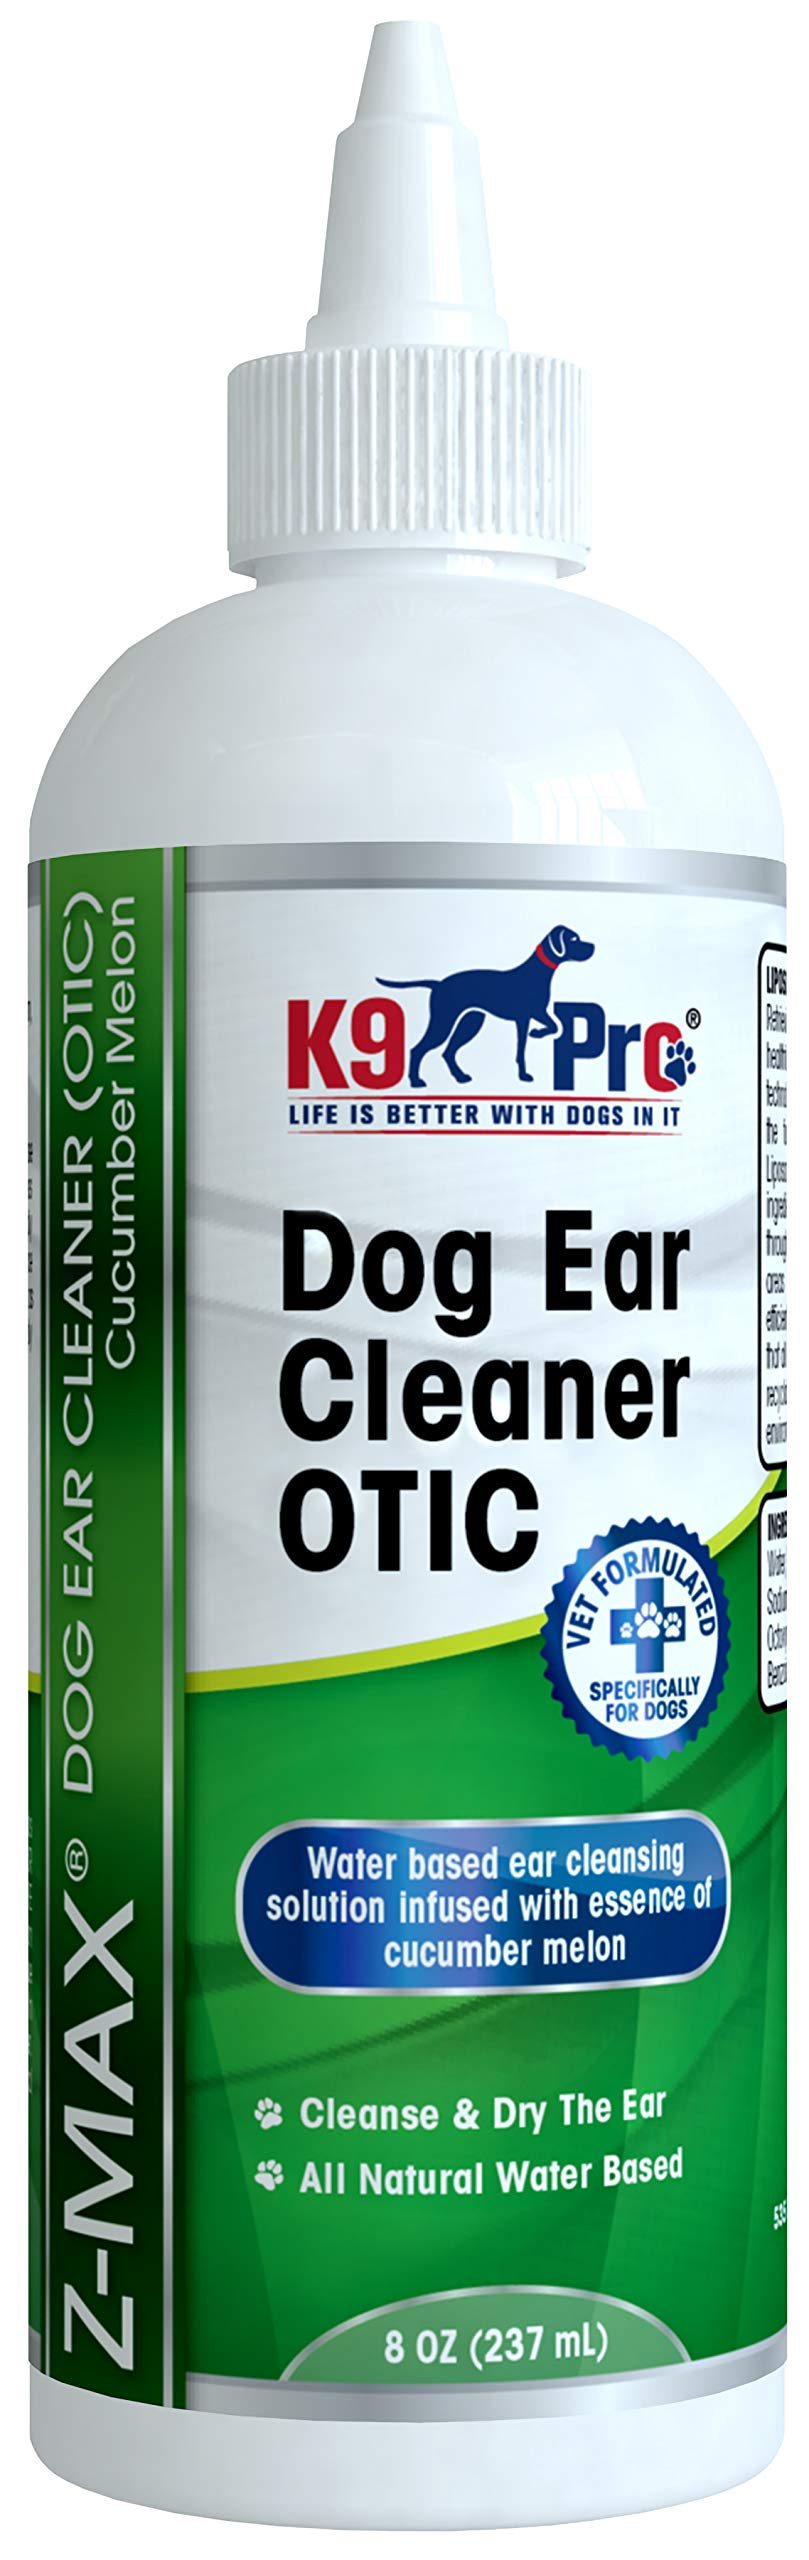 K9 Pro Dog Ear Cleaner - Infection Treatment Advanced OTIC Ear Wash for Dogs - Solution for Ear Mite Dogs Itching Head Shaking Discharge Smelly Ears & Yeast Infections by K9 Pro